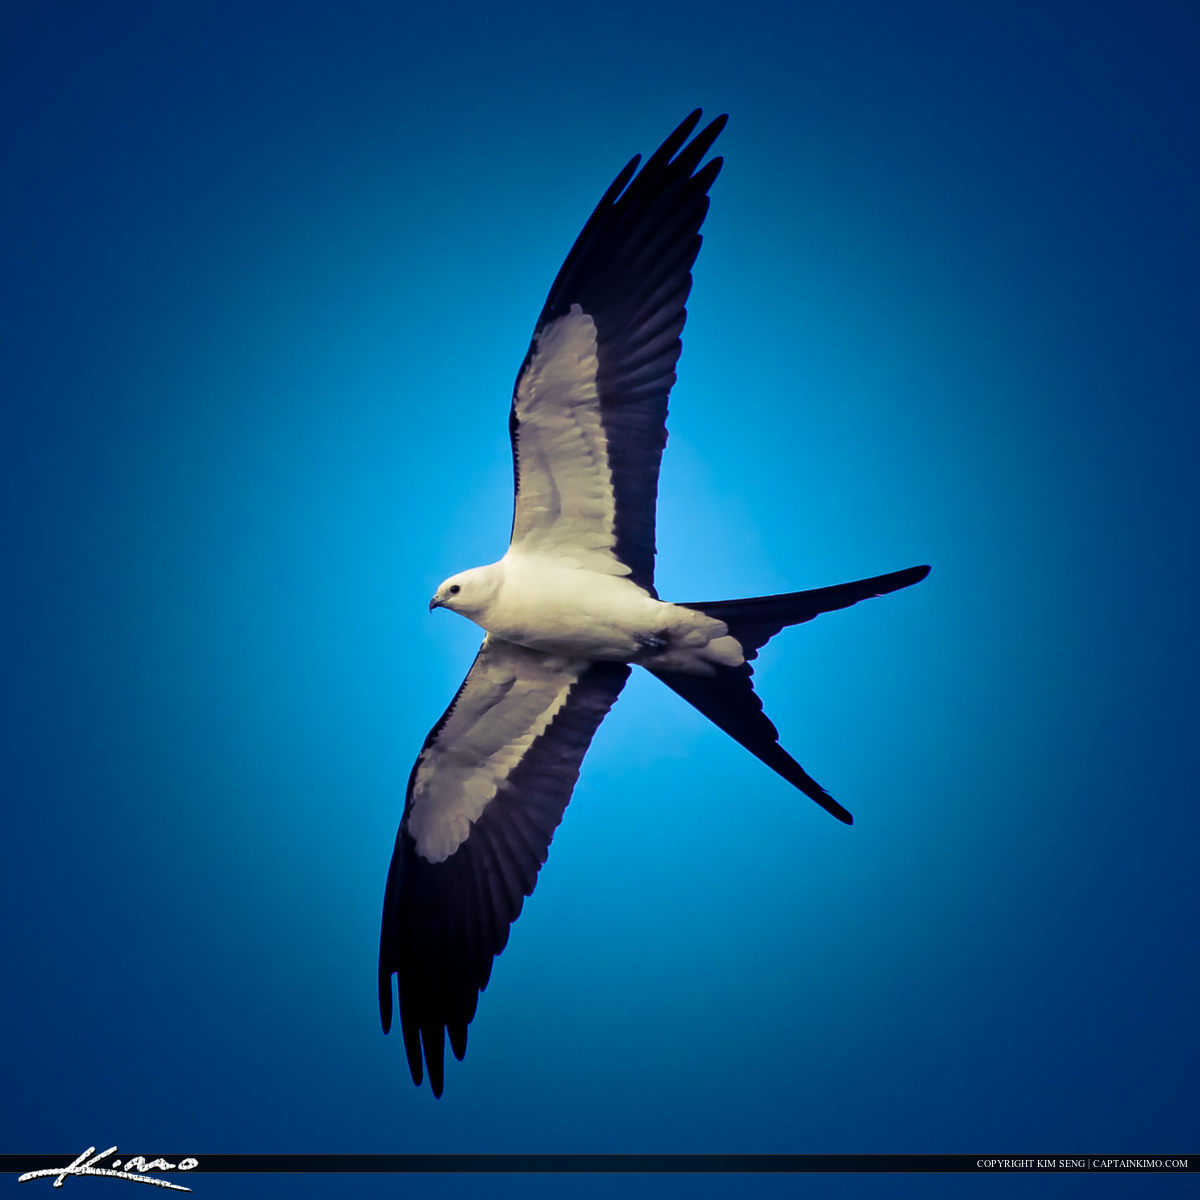 Swallow-tailed Kite Wing Spread Gliding High in Sky